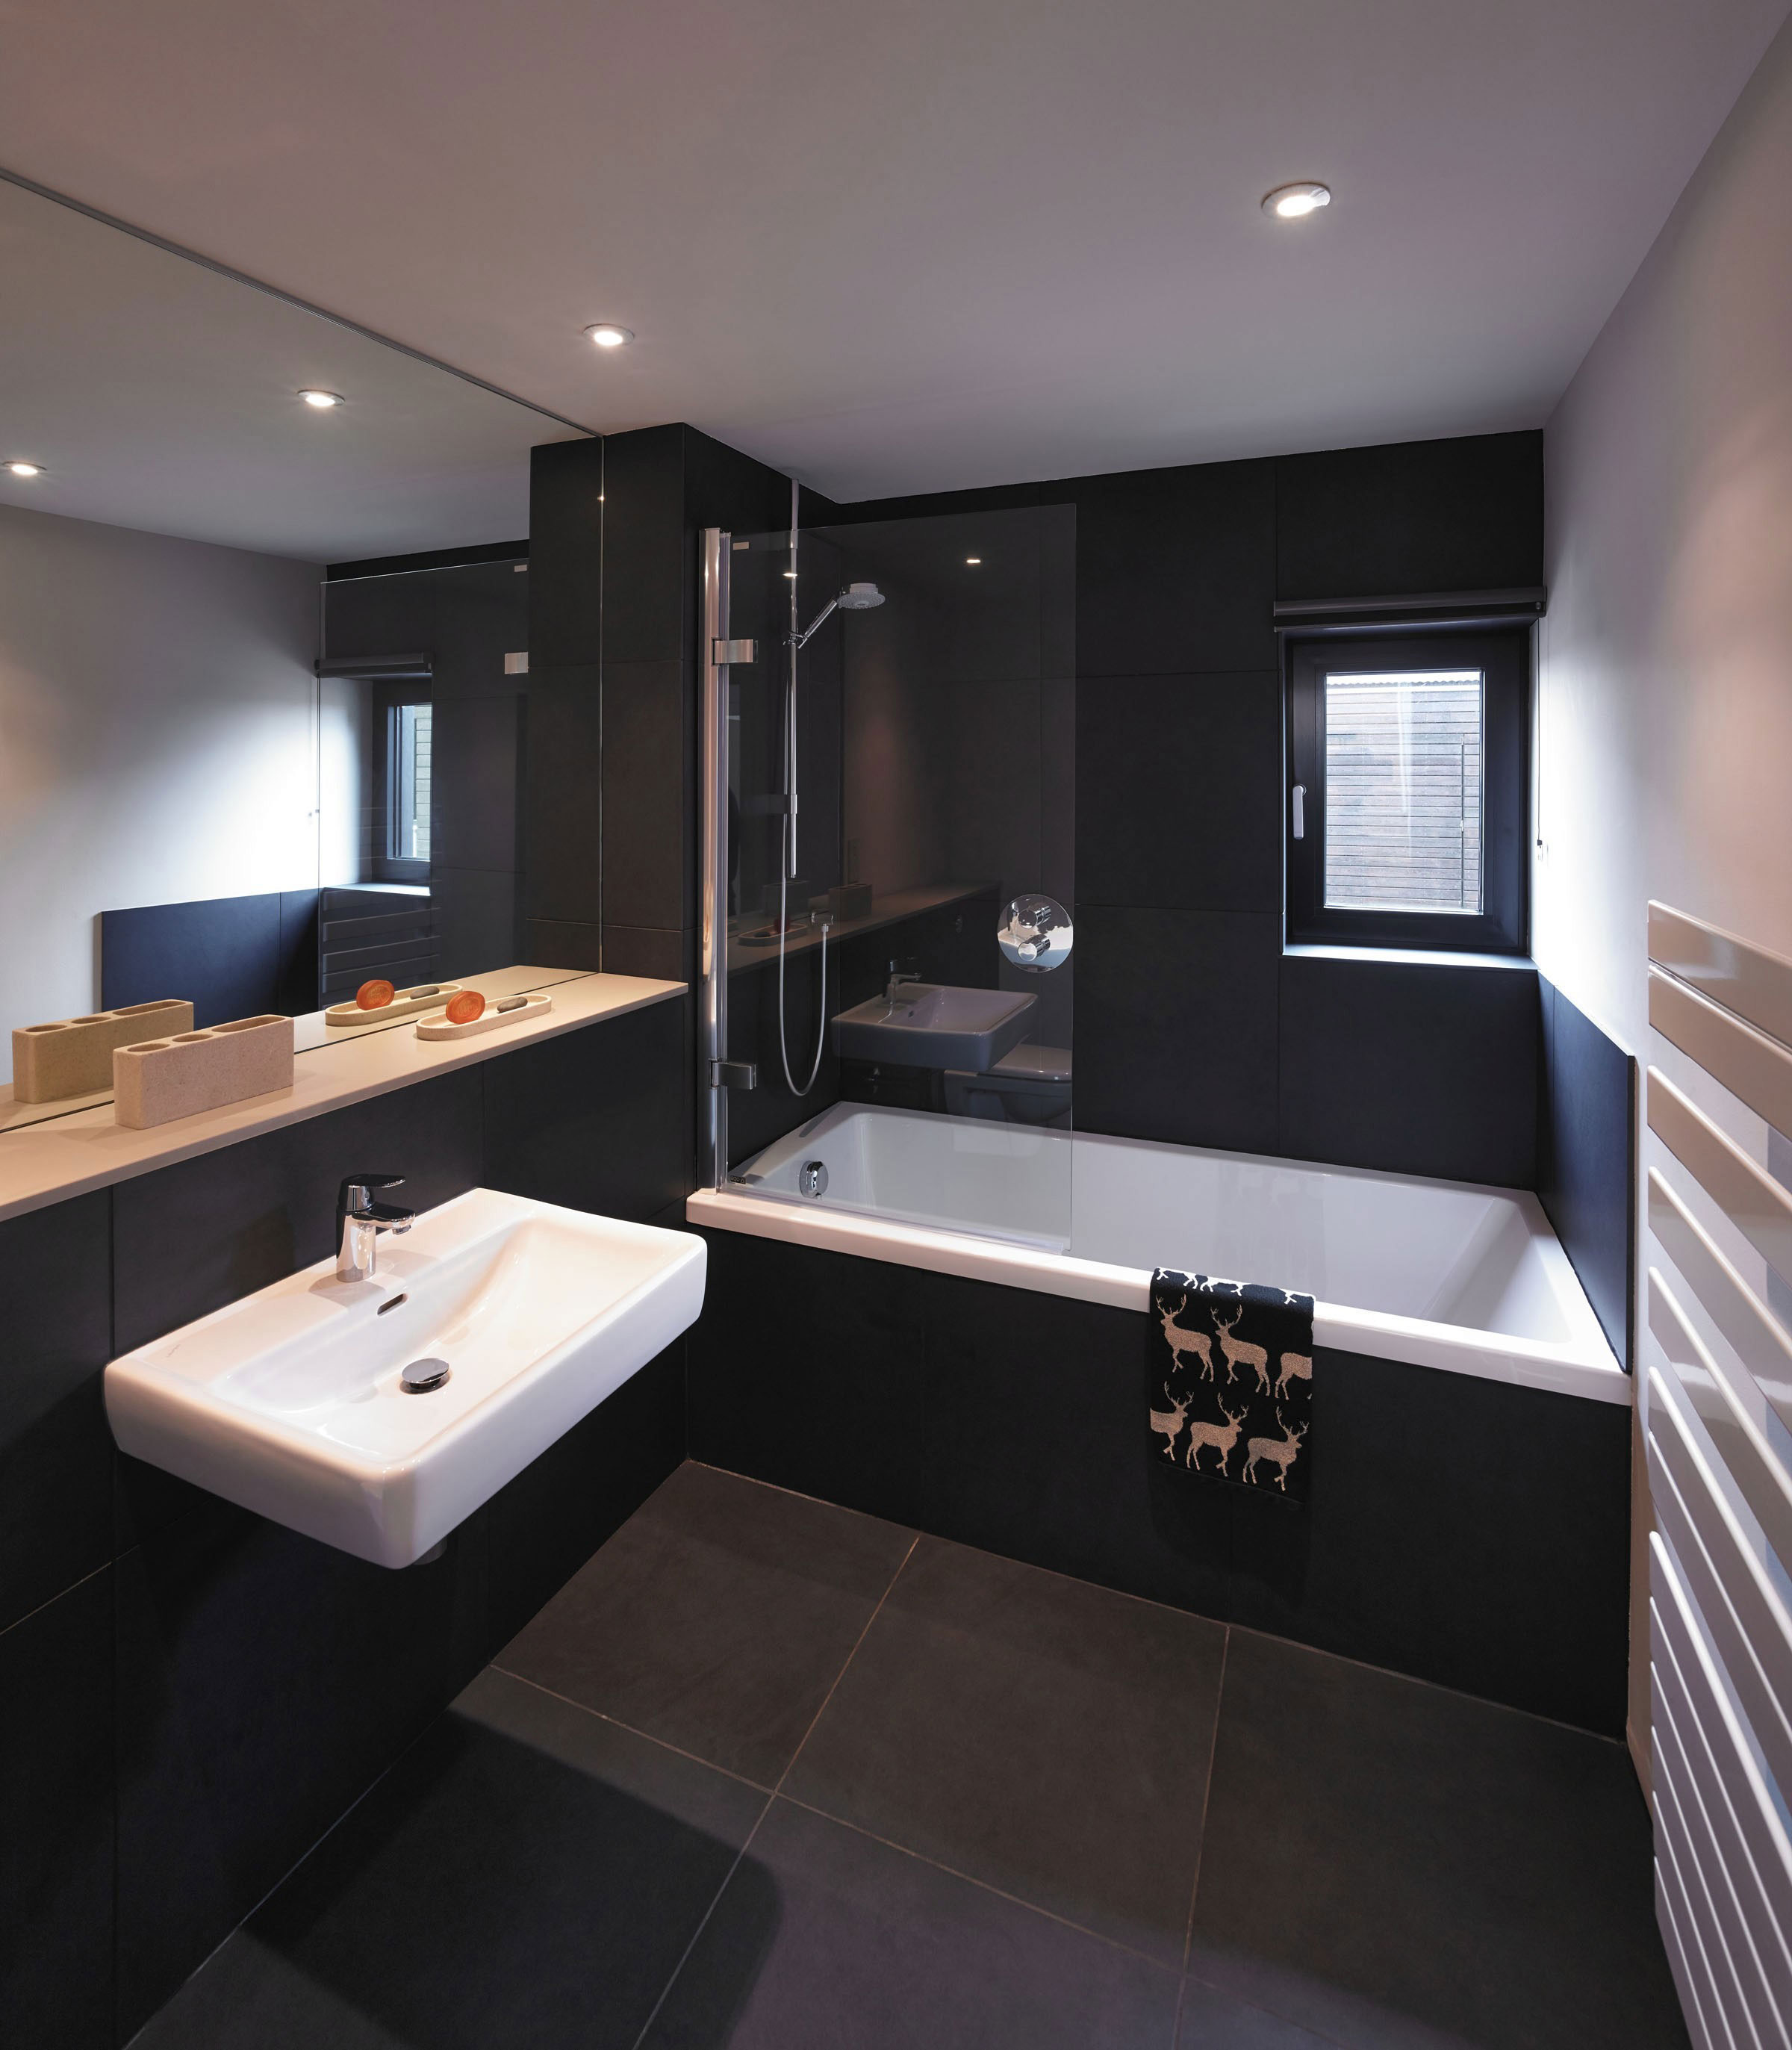 House-in-Colbost-bathroom